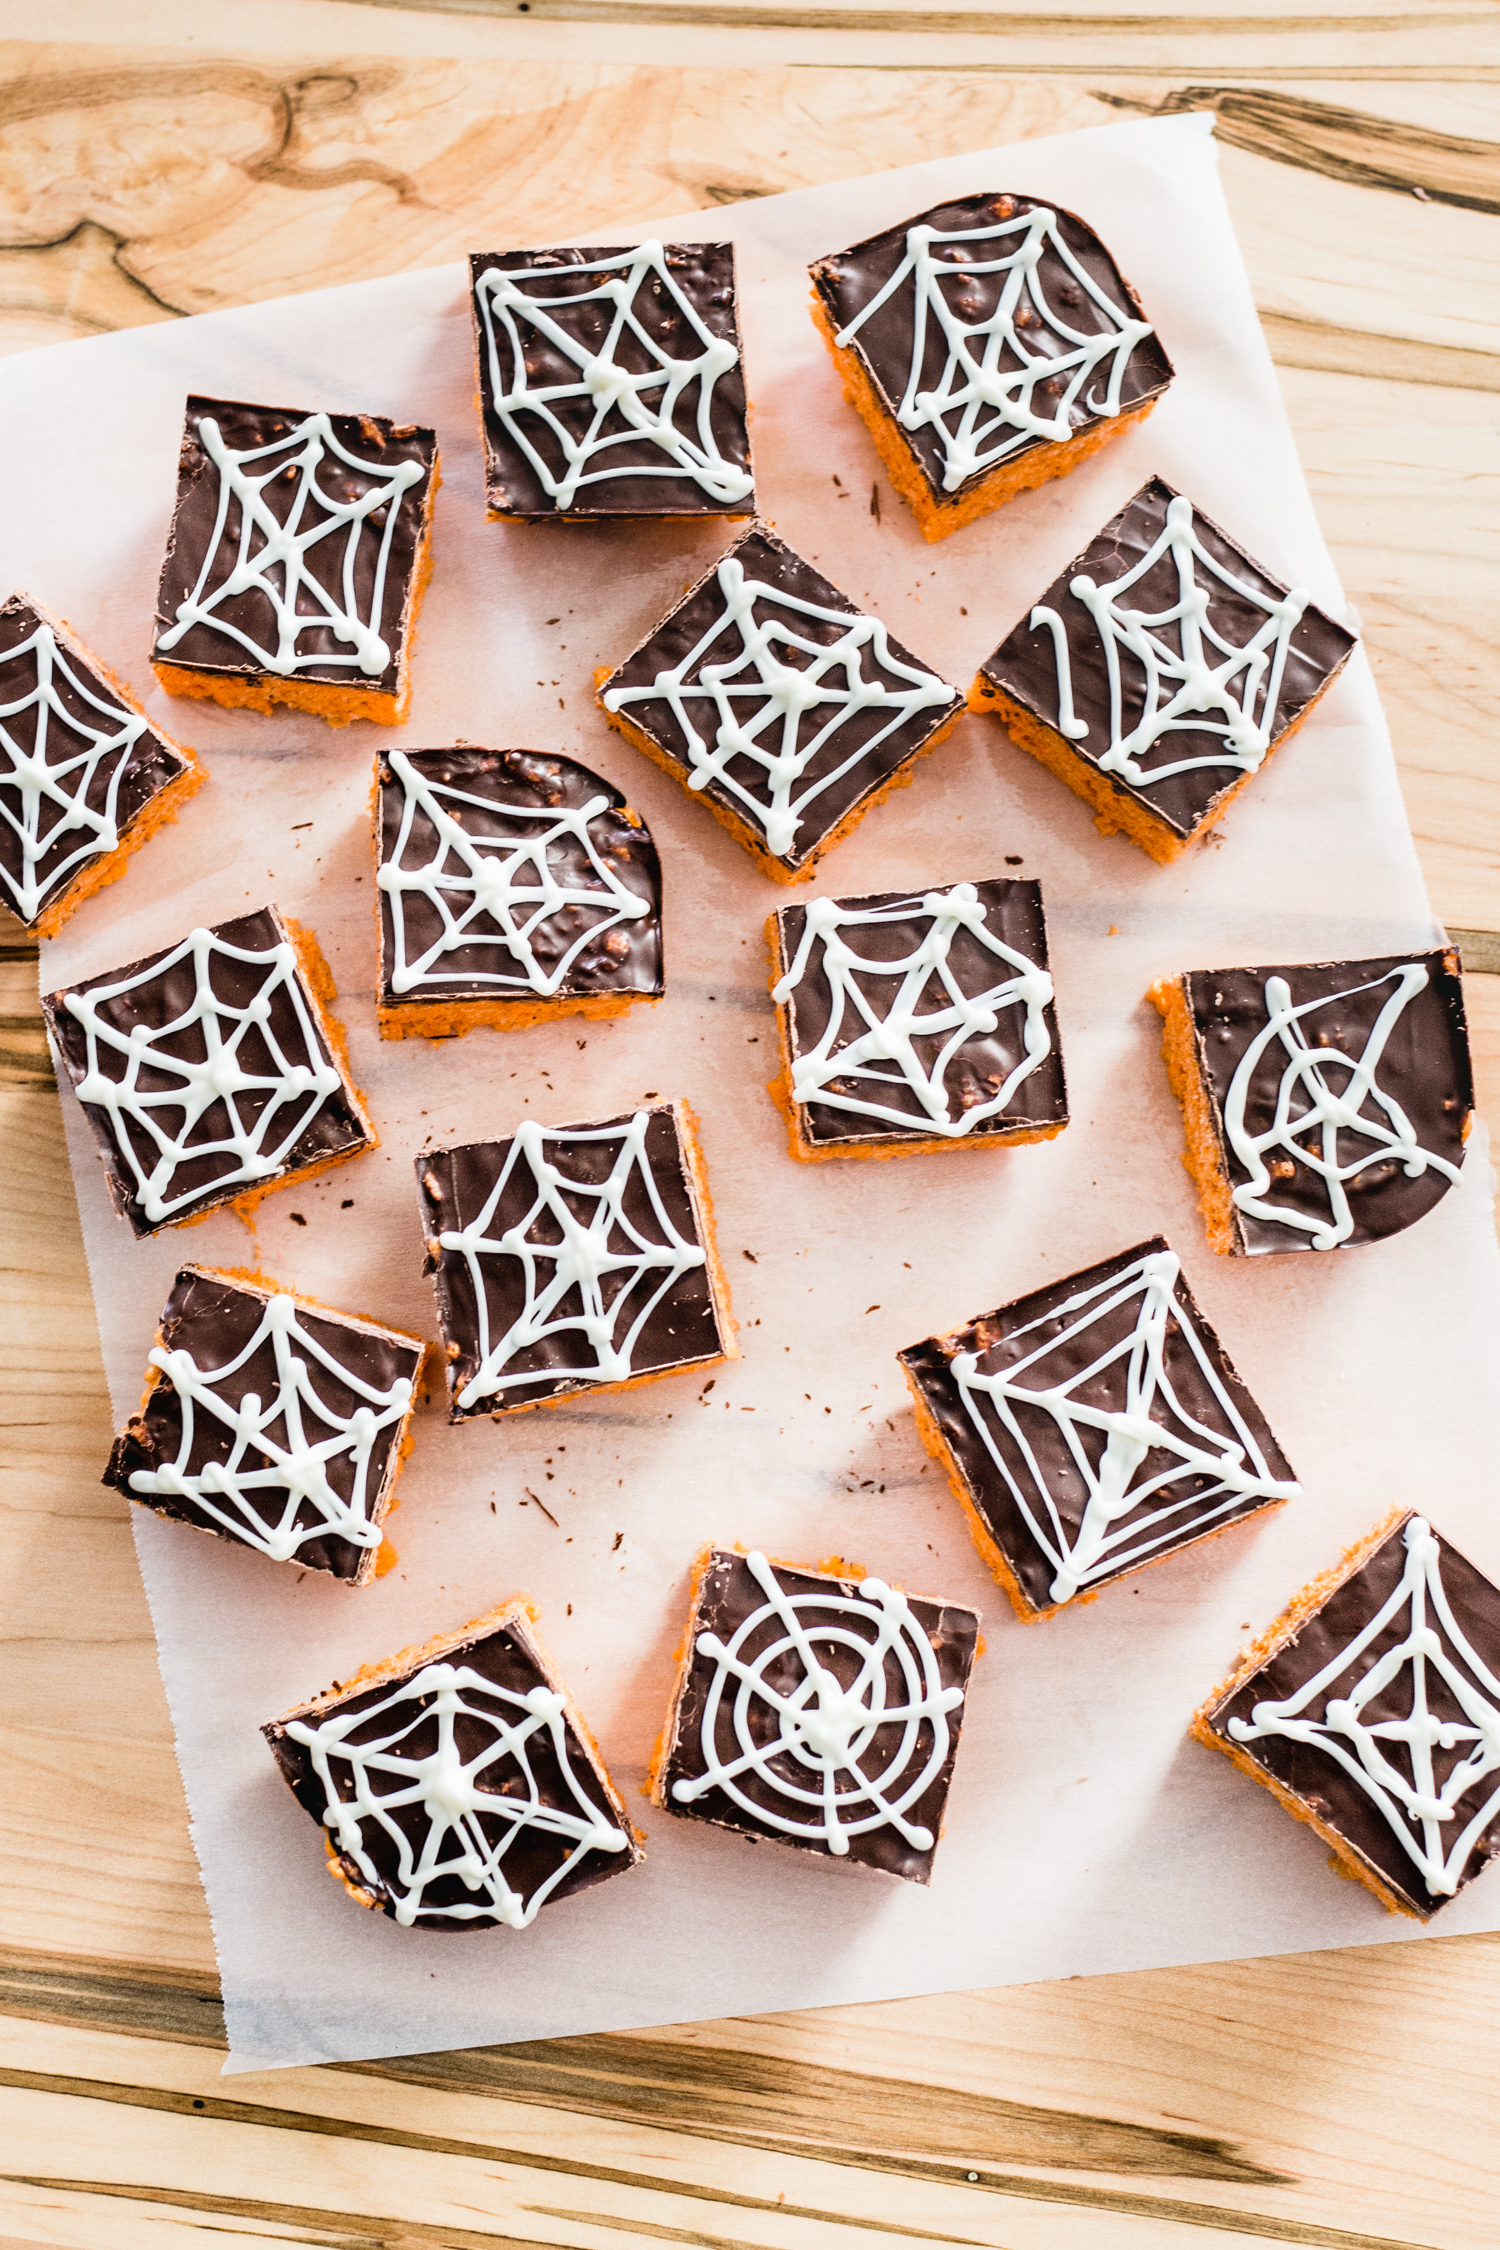 Spider Web Cereal Treats from Jelly Toast made with Campfire HallowMallows